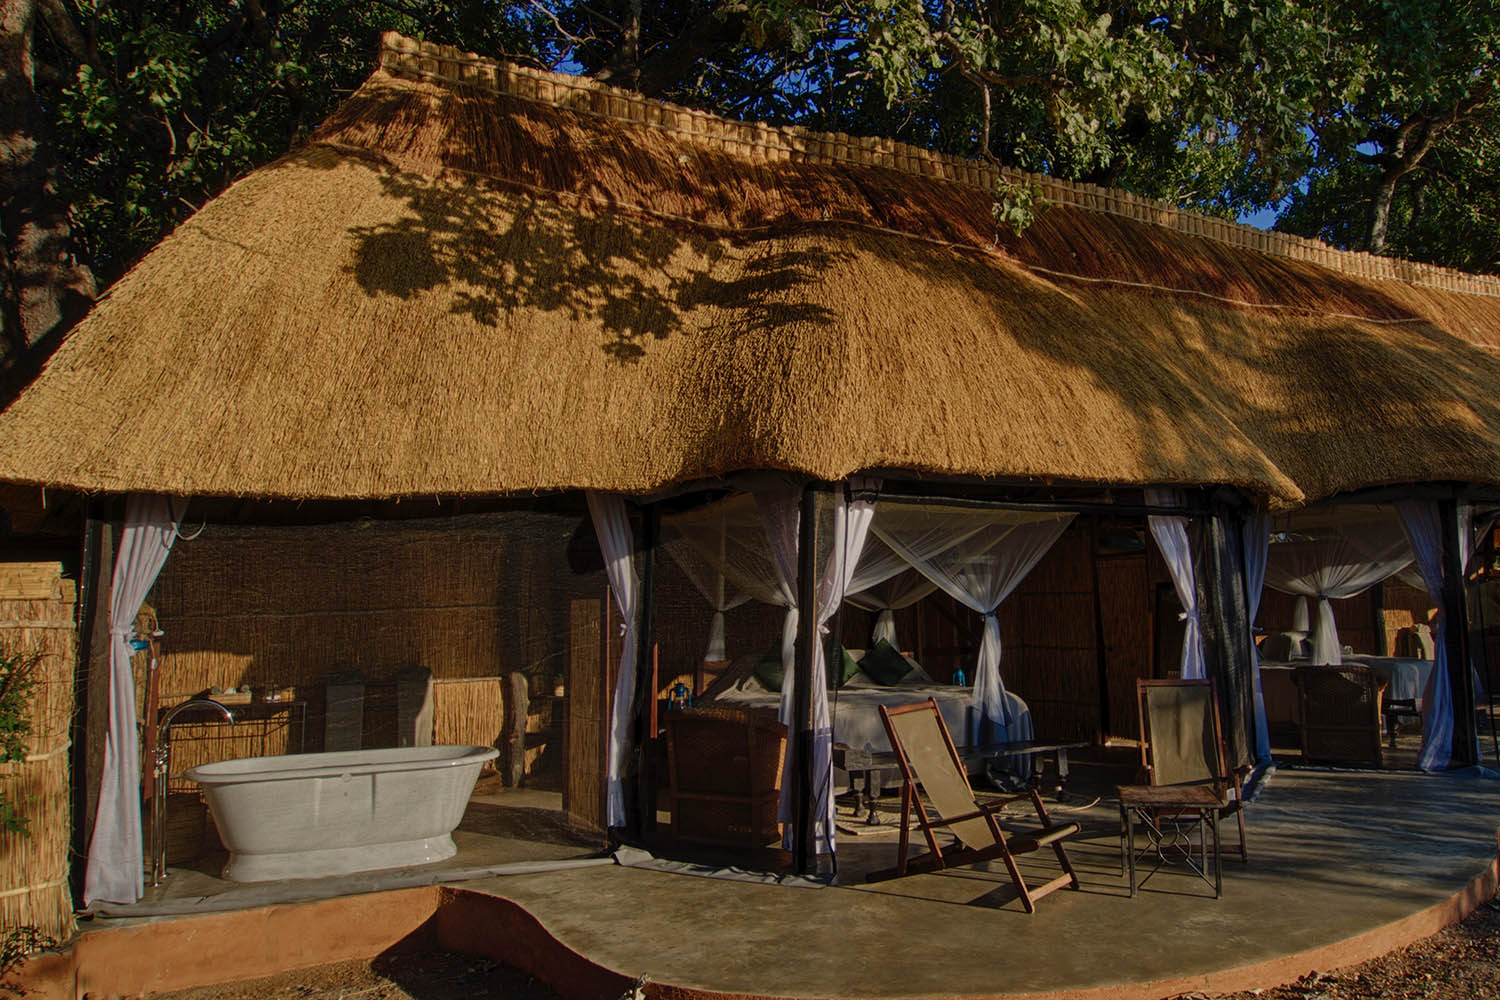 mchenja-bush-camp-lodge-zambia-in-style-tours-safari-packages-lodges-explore-south-luangwa-national-park-campsite